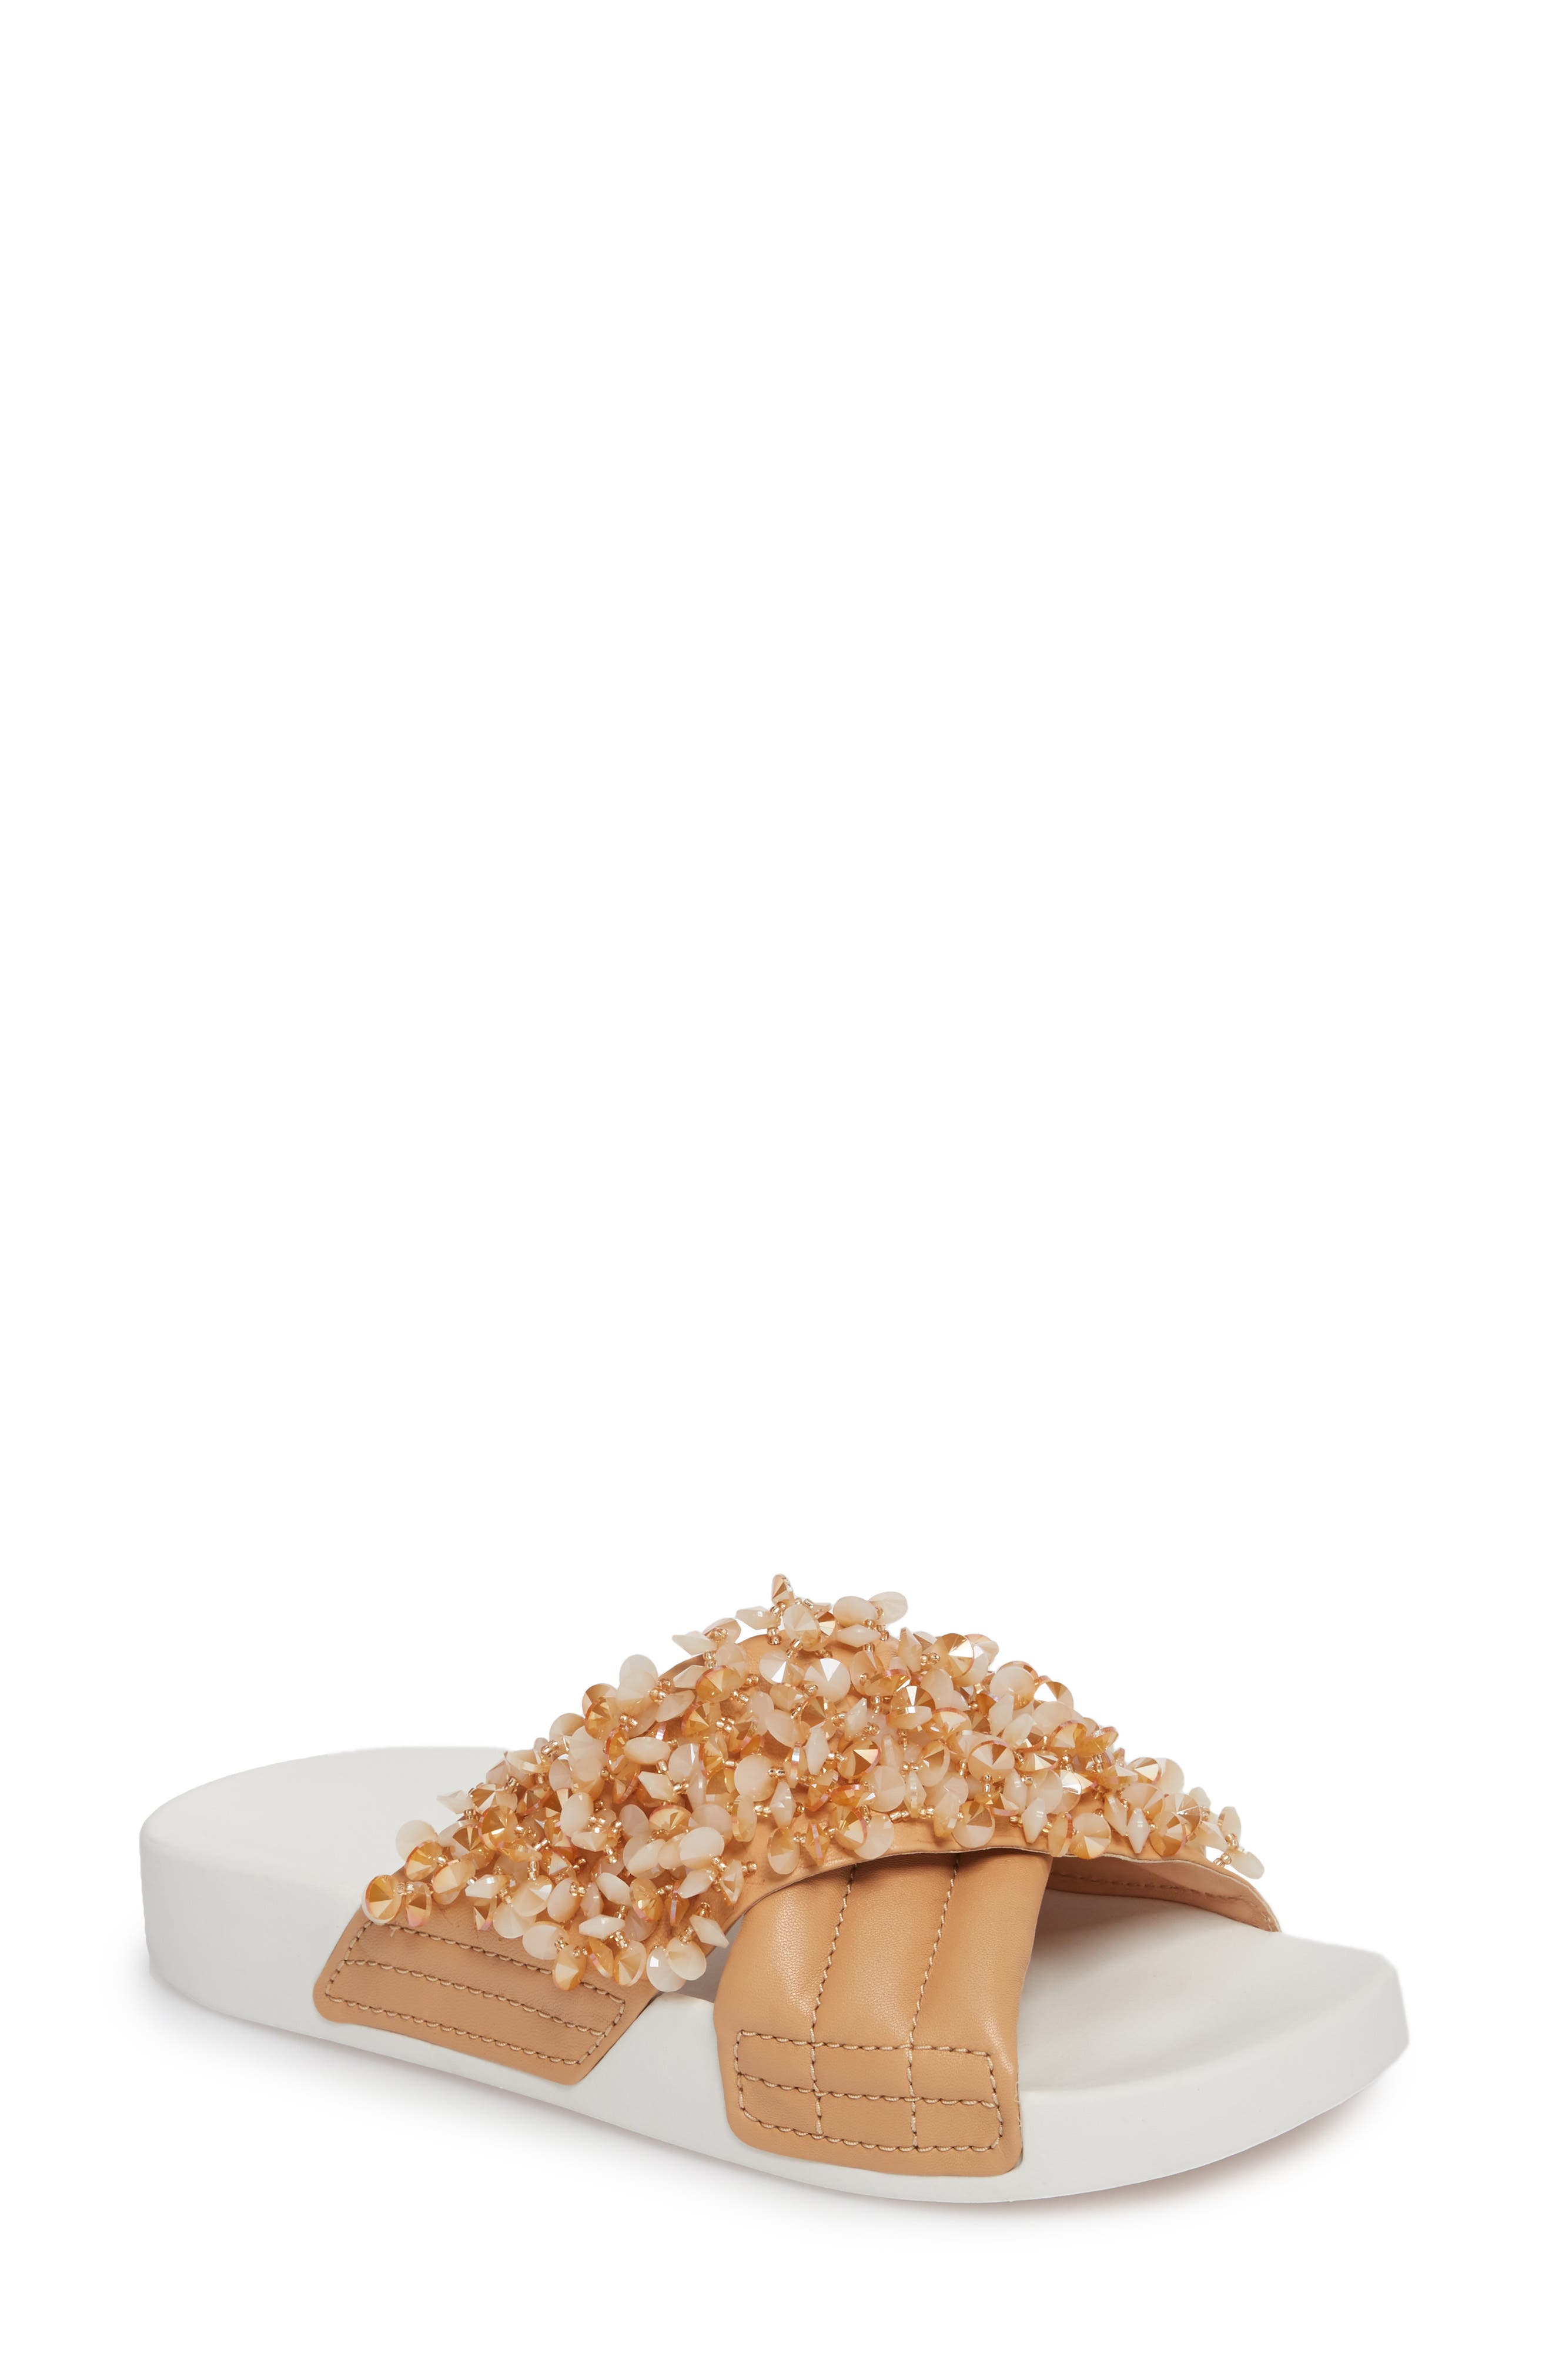 Logan Embellished Slide Sandal,                             Main thumbnail 1, color,                             Natural Vachetta/ Cassia